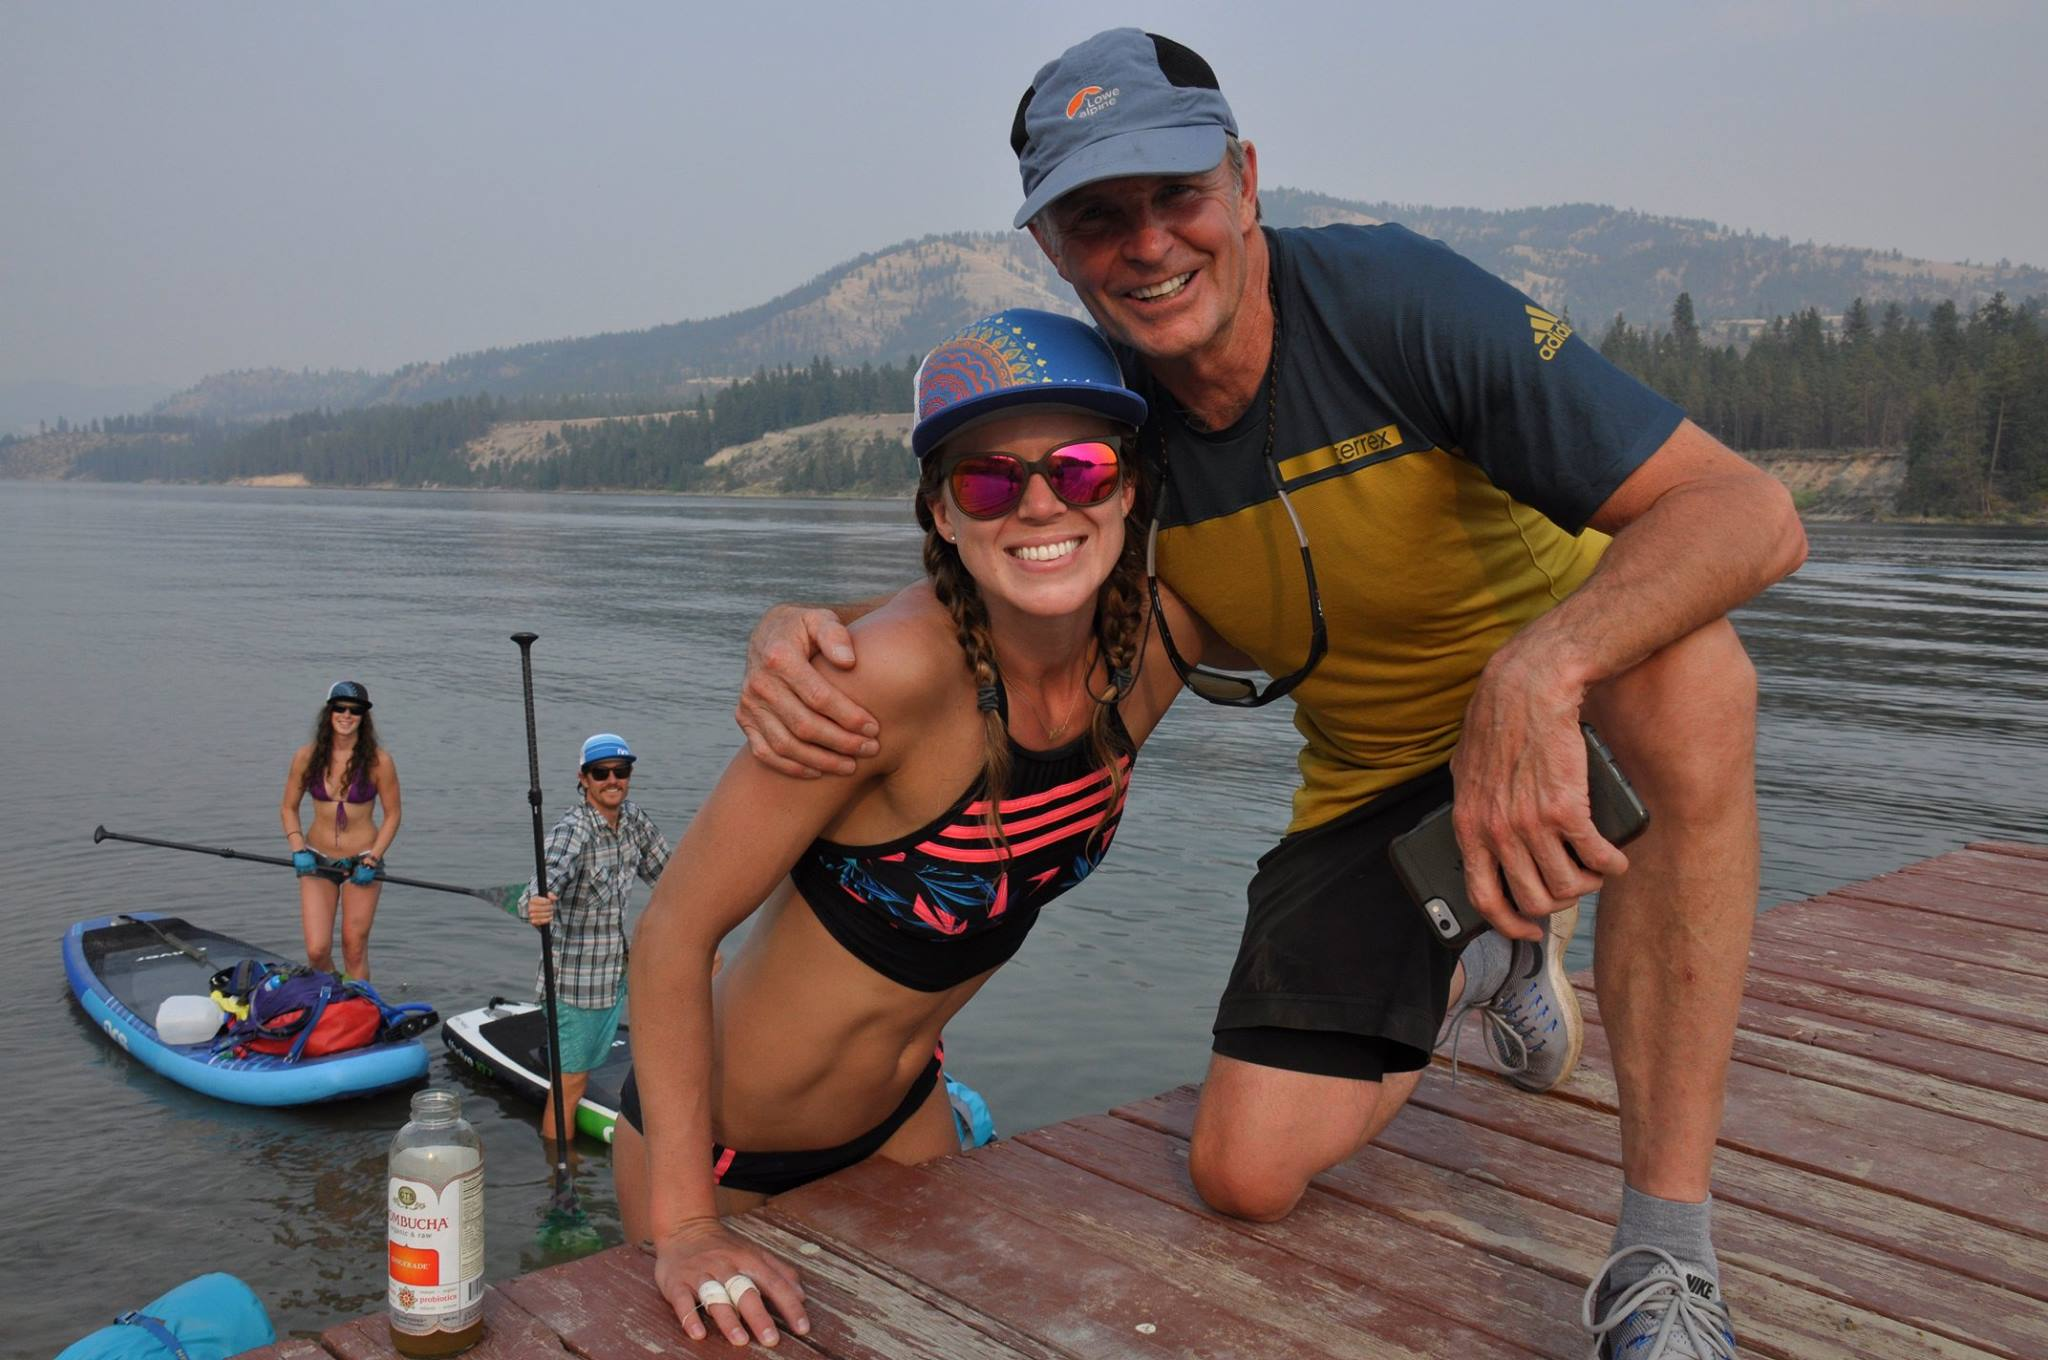 Allie and her father-in-law, John Roskelley, a few hundred yards from the team's final destination at the confluence of the Columbia River and Lake Roosevelt. John and his wife, Joyce, met the team at various stopping points along their route to drop snacks and kombucha. (Photo from Allie Roskelley.)